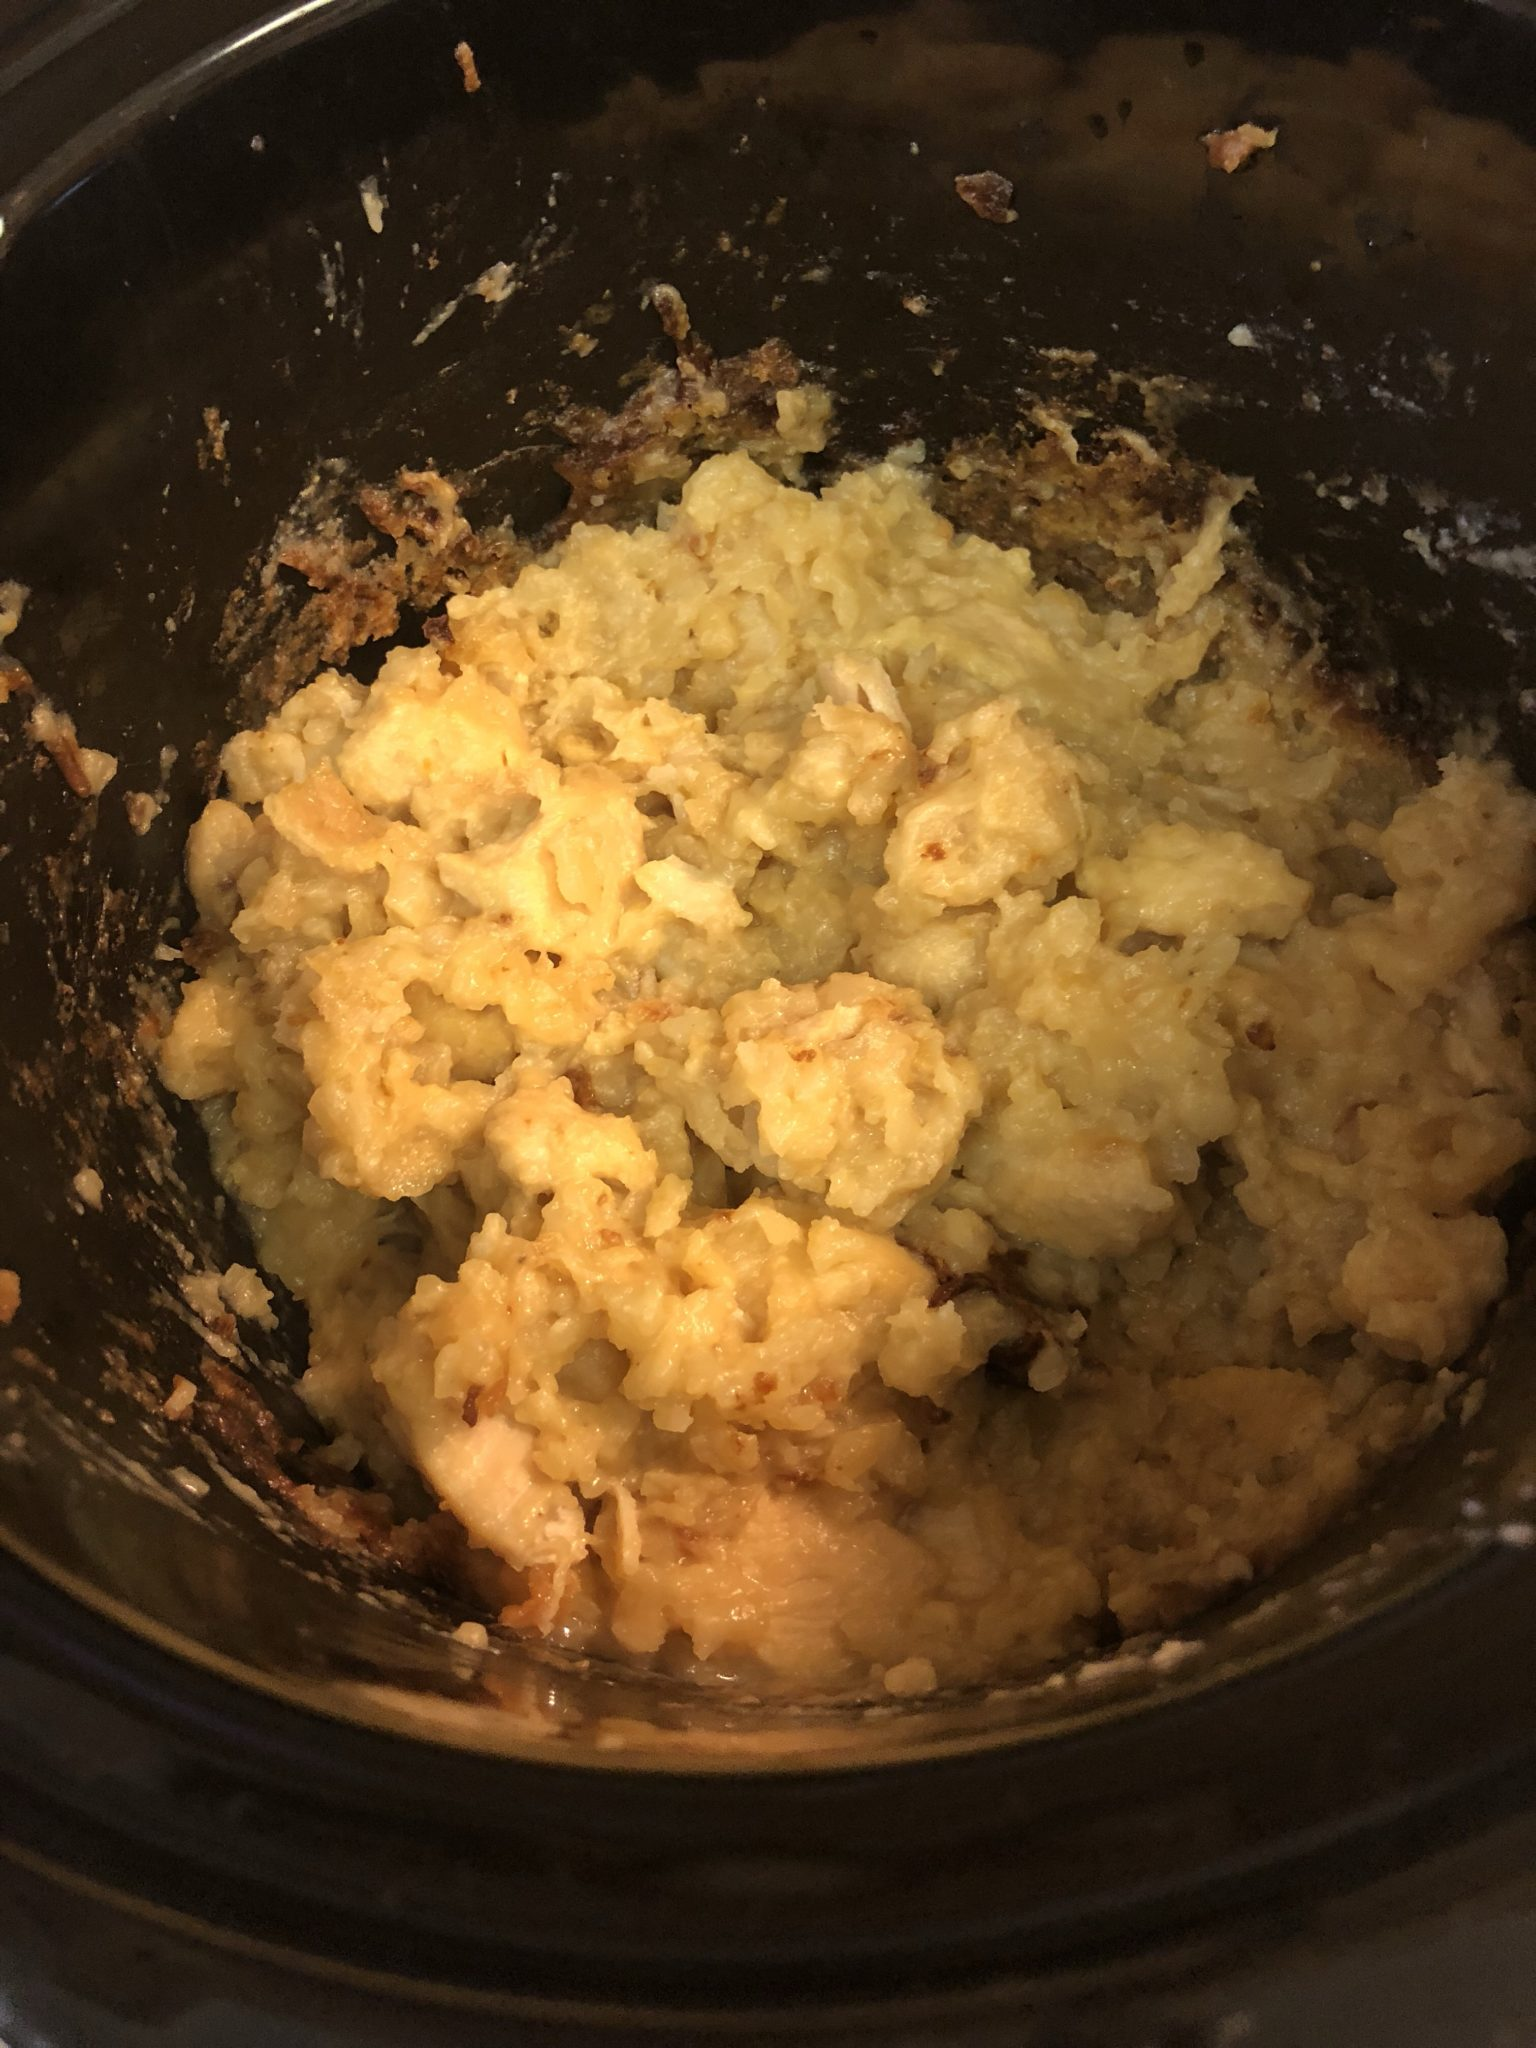 Cooked casserole in the crockpot